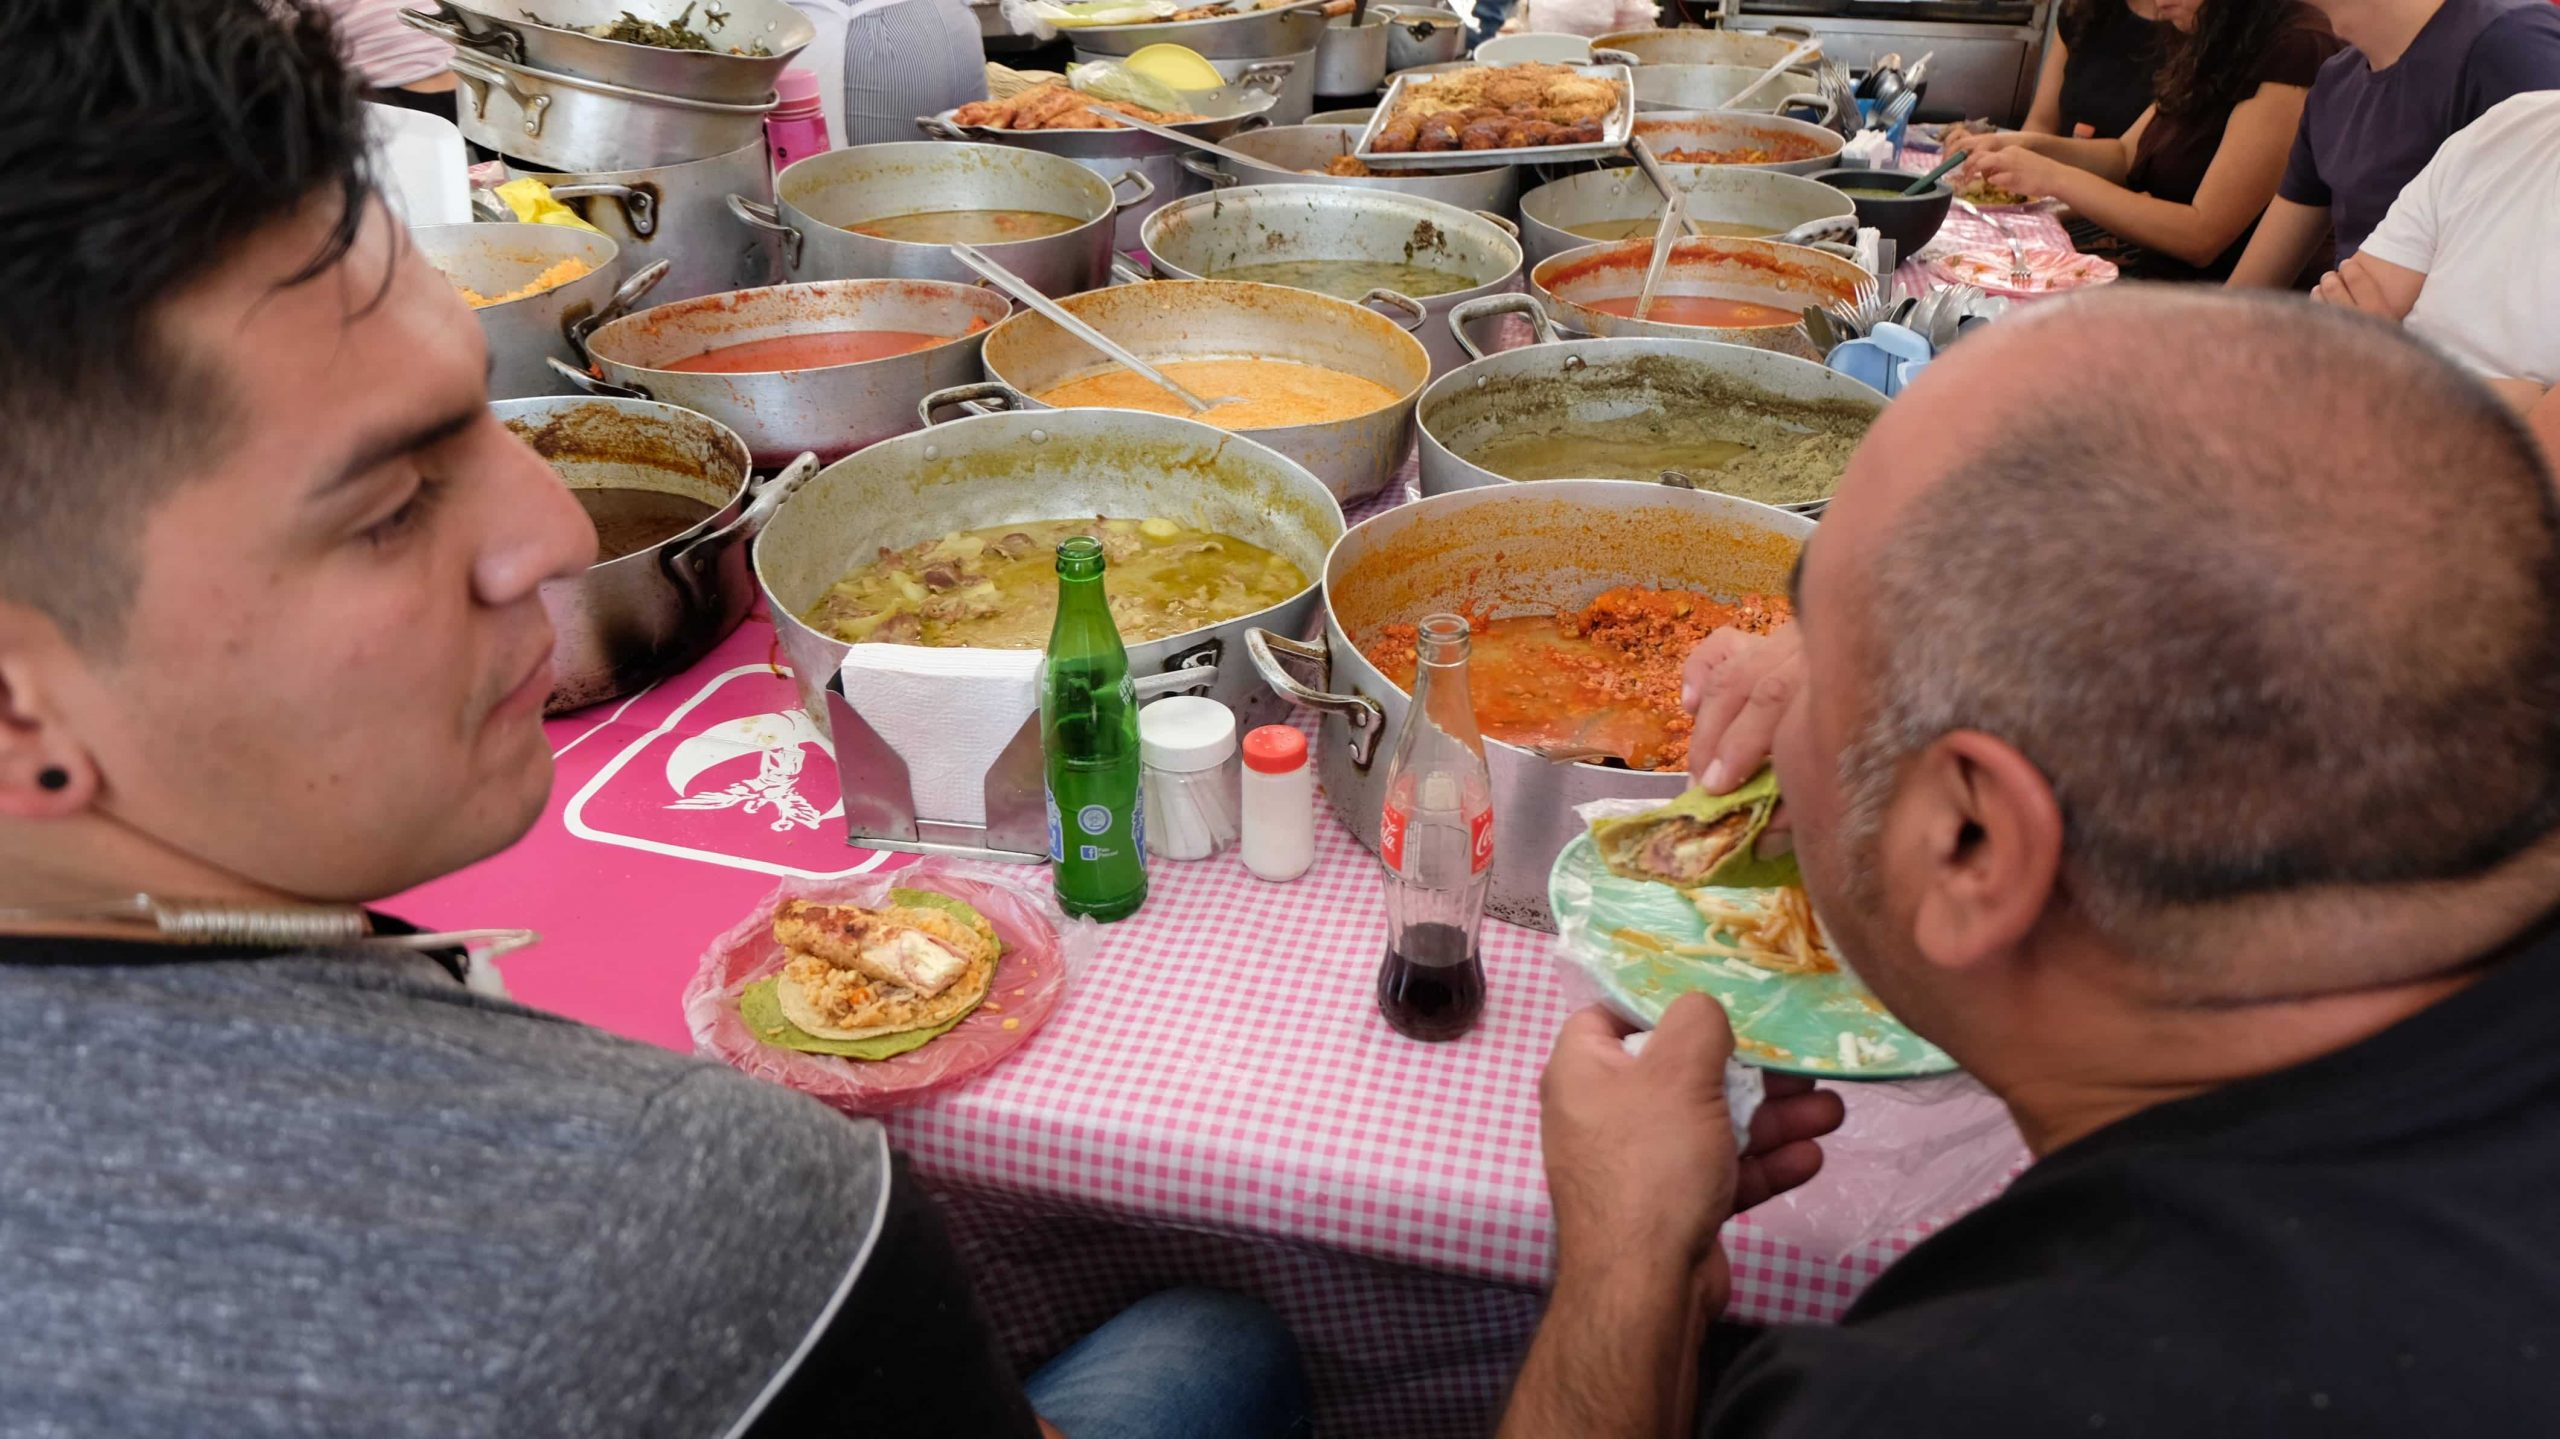 Shared Food A Culinary Journey Istanbul Mexico City